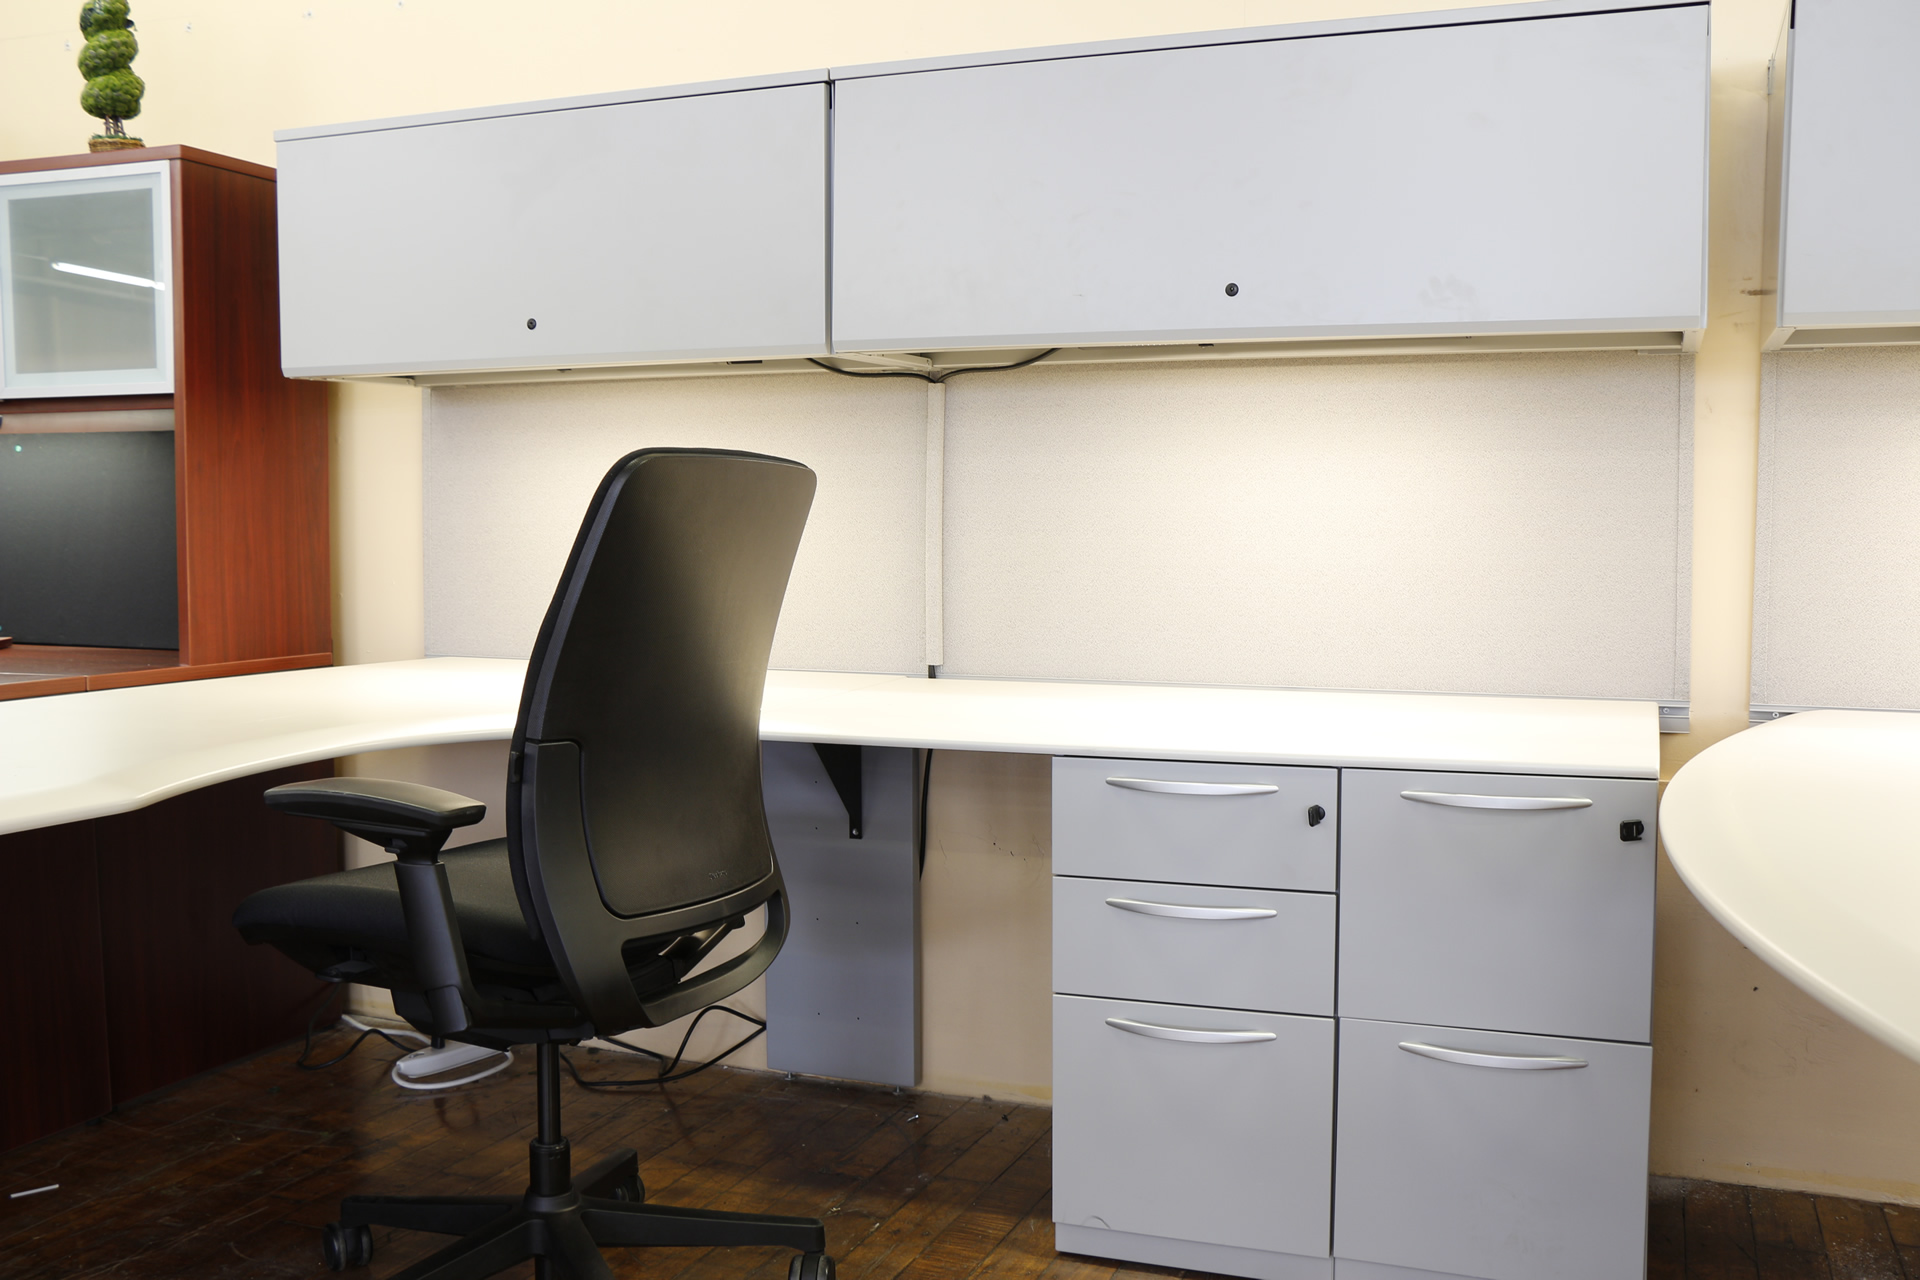 peartreeofficefurniture_peartreeofficefurniture_mg_4405.jpg